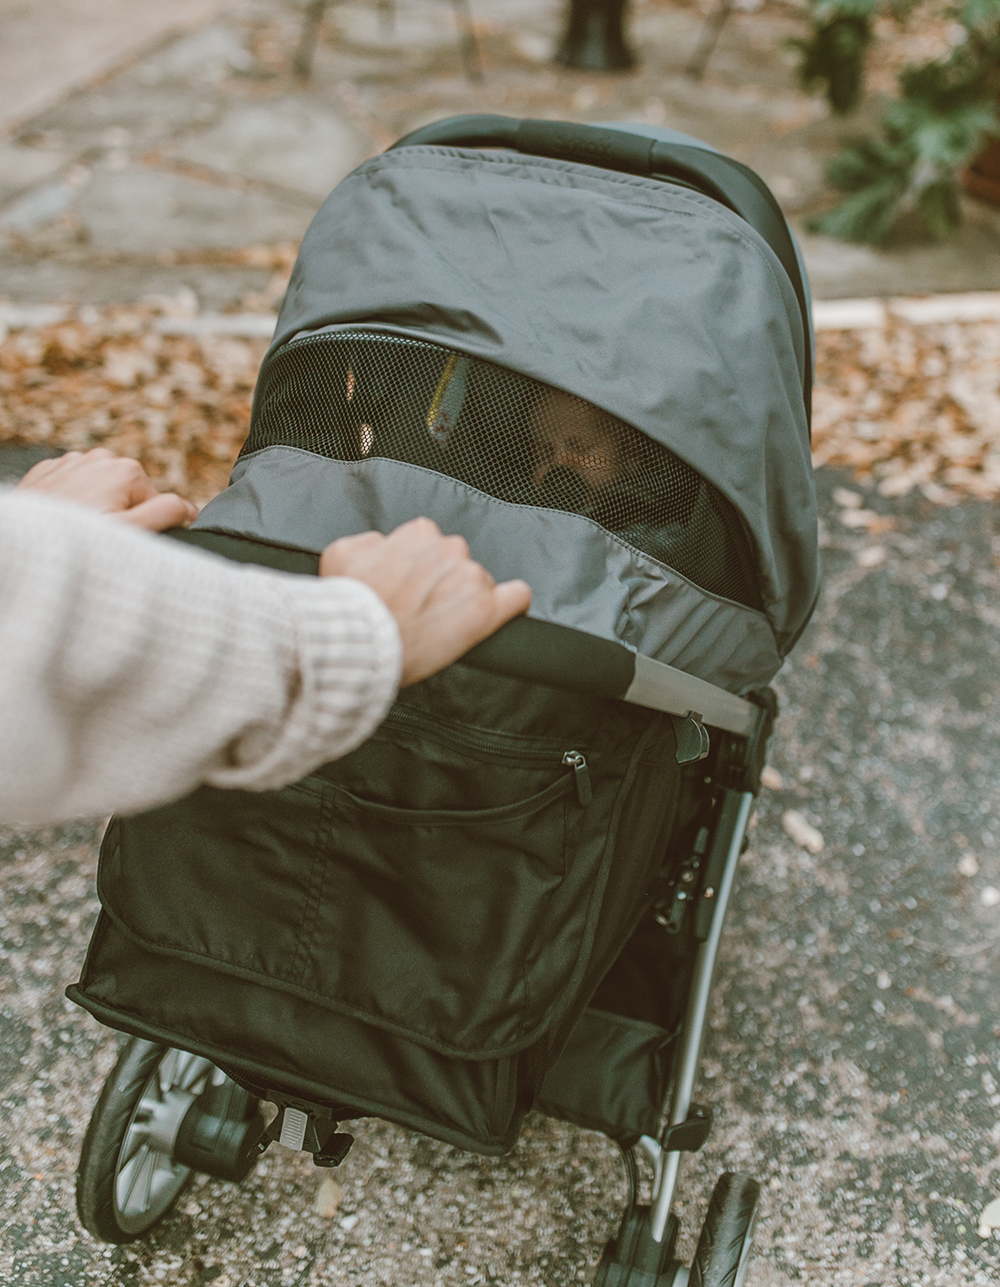 livvyland-blog-olivia-watson-austin-texas-lifestyle-mom-motherhood-blogger-britax-b-lively-travel-system-stroller-review-3